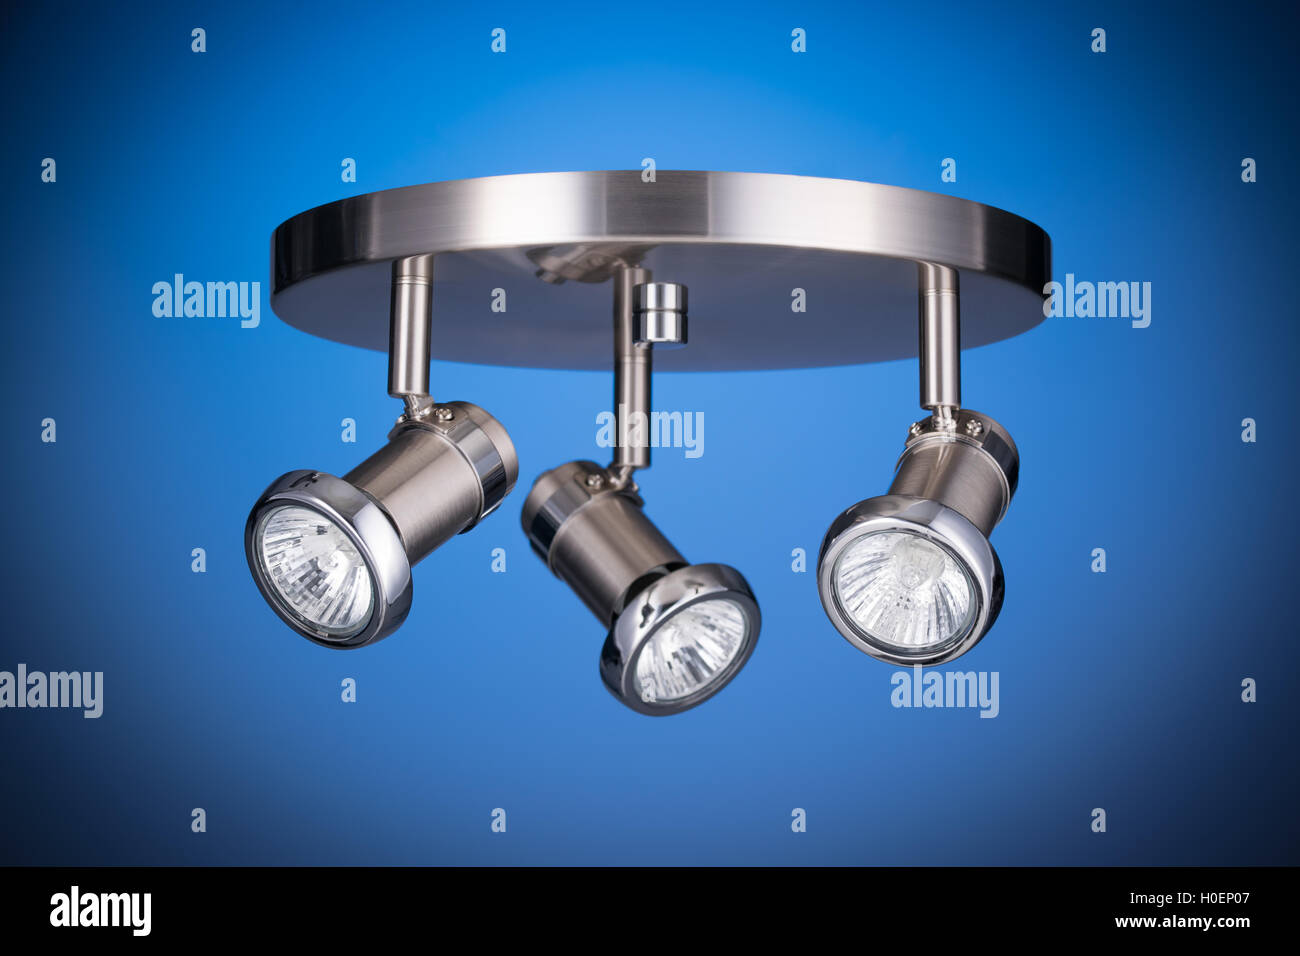 Ceiling light fixture isolated on blue background - Stock Image